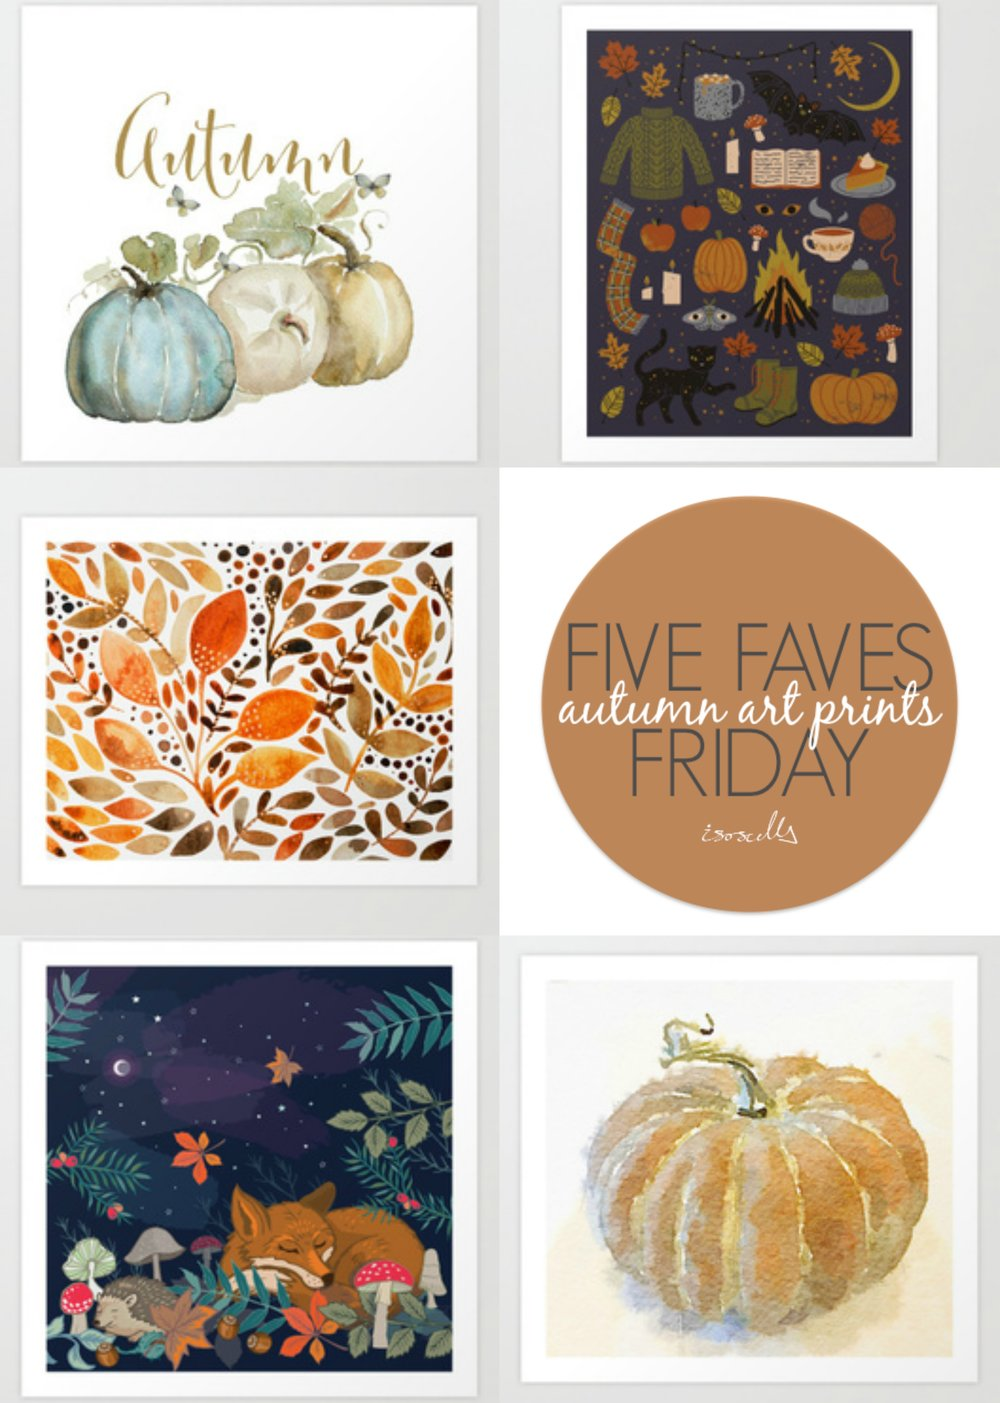 Five Faves Friday - Autumn Art Prints - Isoscella